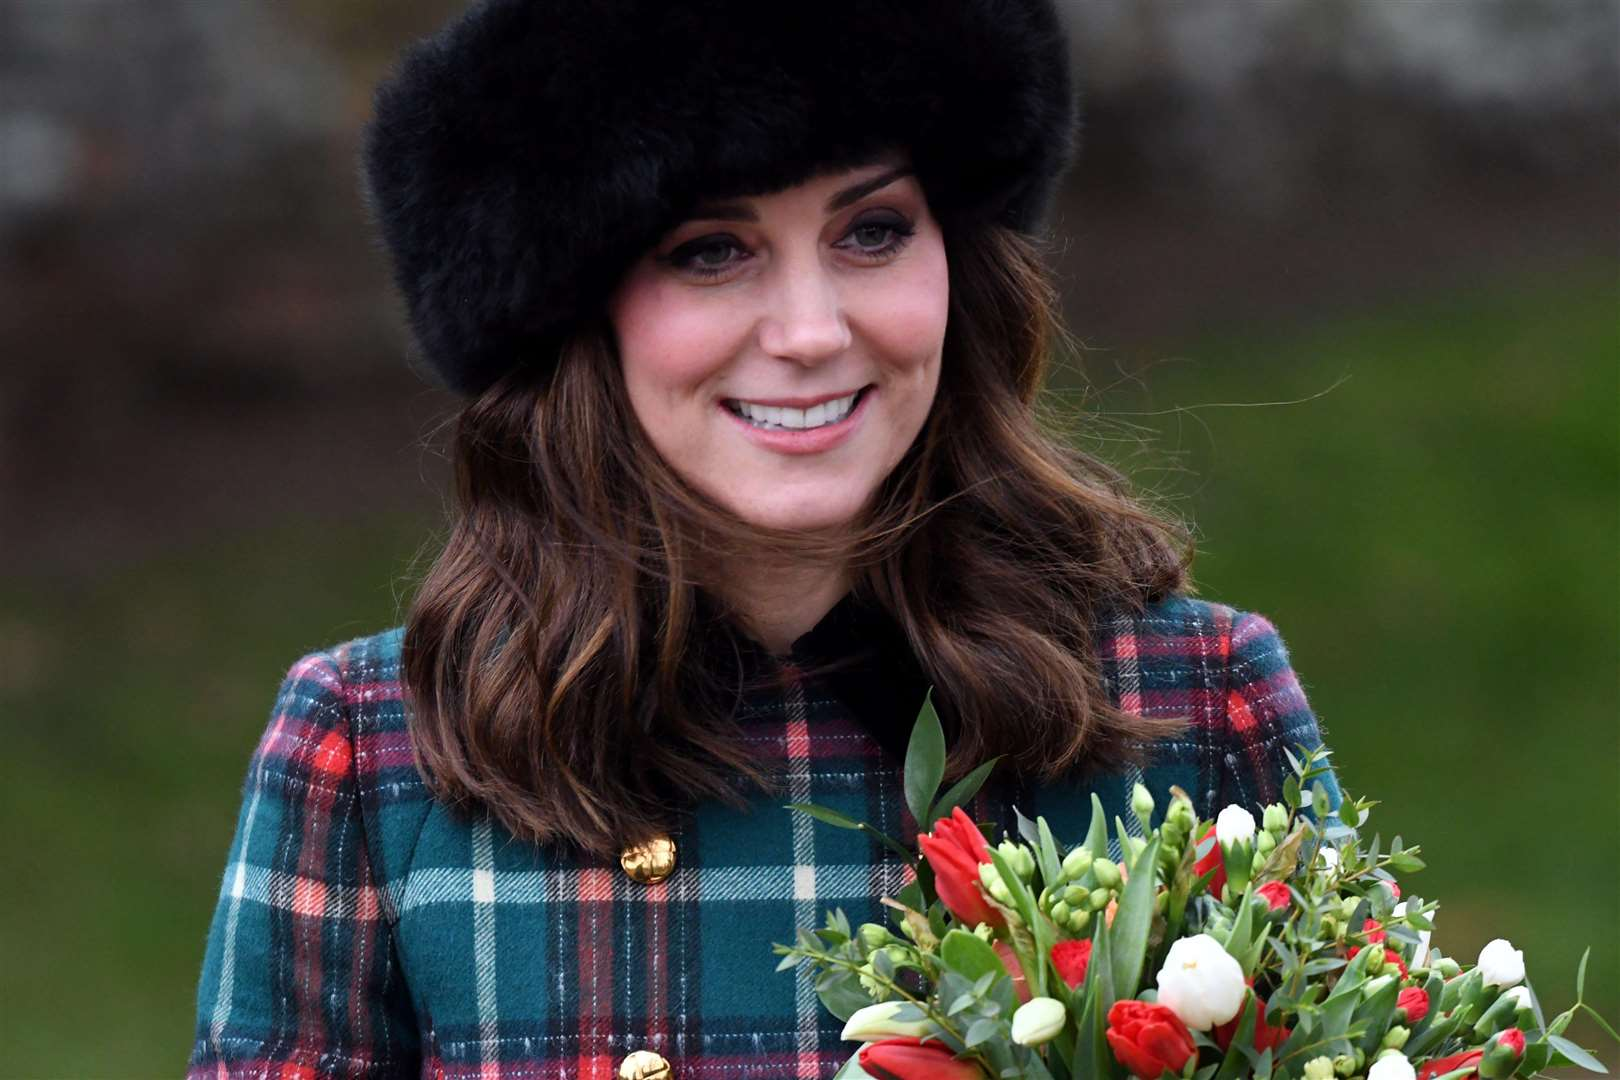 The royal 'fab four' are all smiles at annual Christmas church service